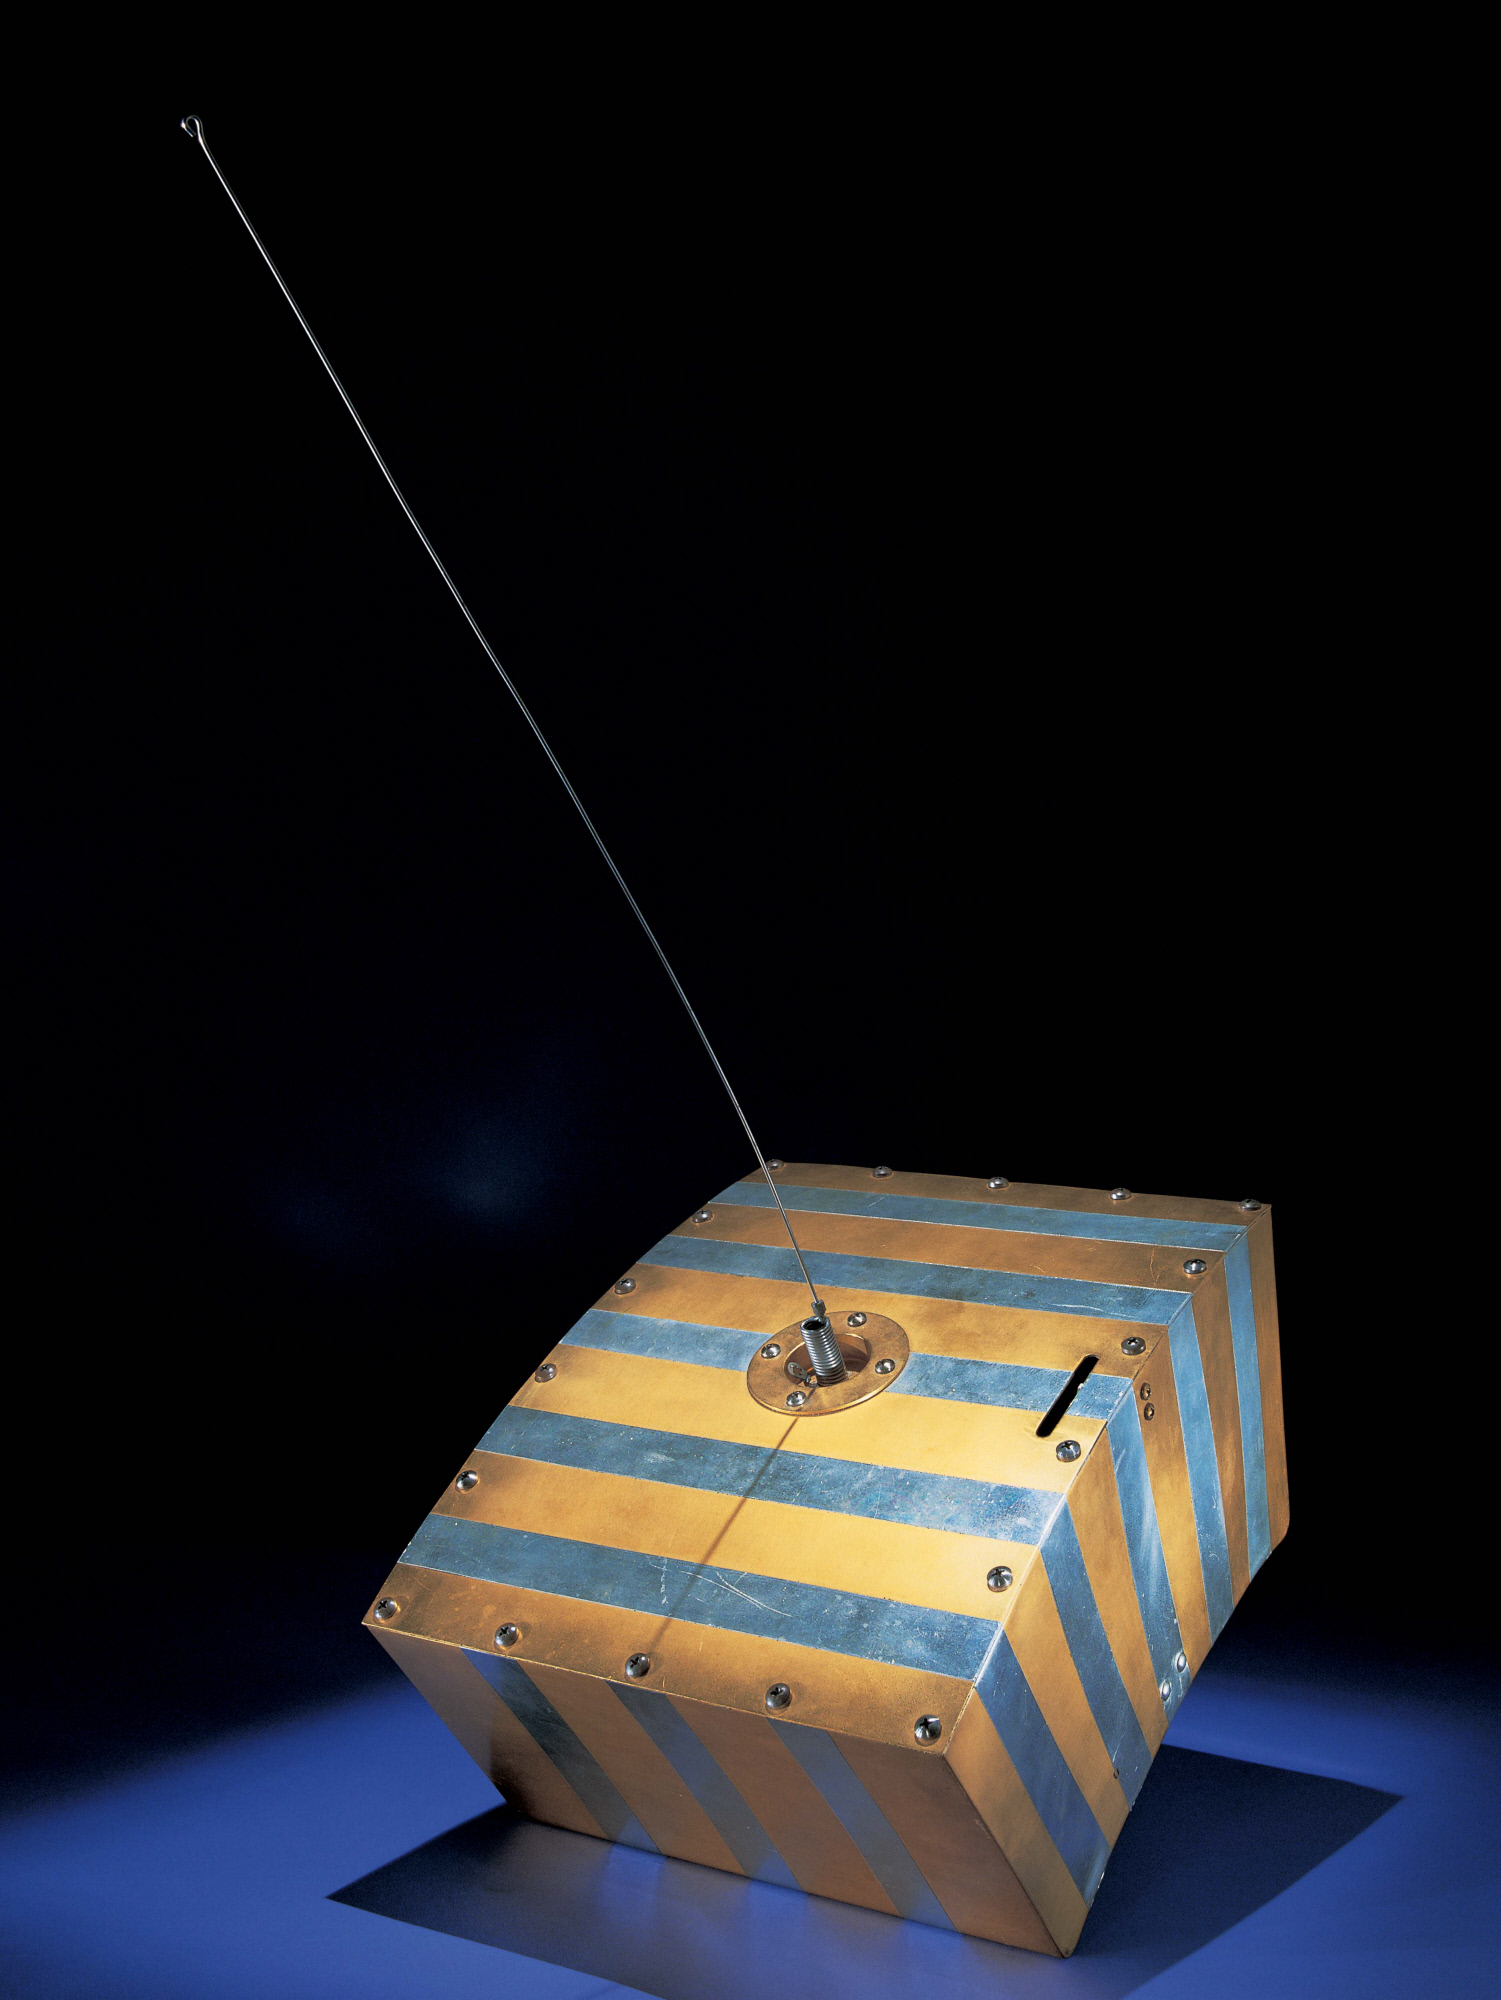 A model of Oscar, the world's first amateur satellite, on display at the Smithsonian National Air and Space Museum. Source:  Smithsonian Institute